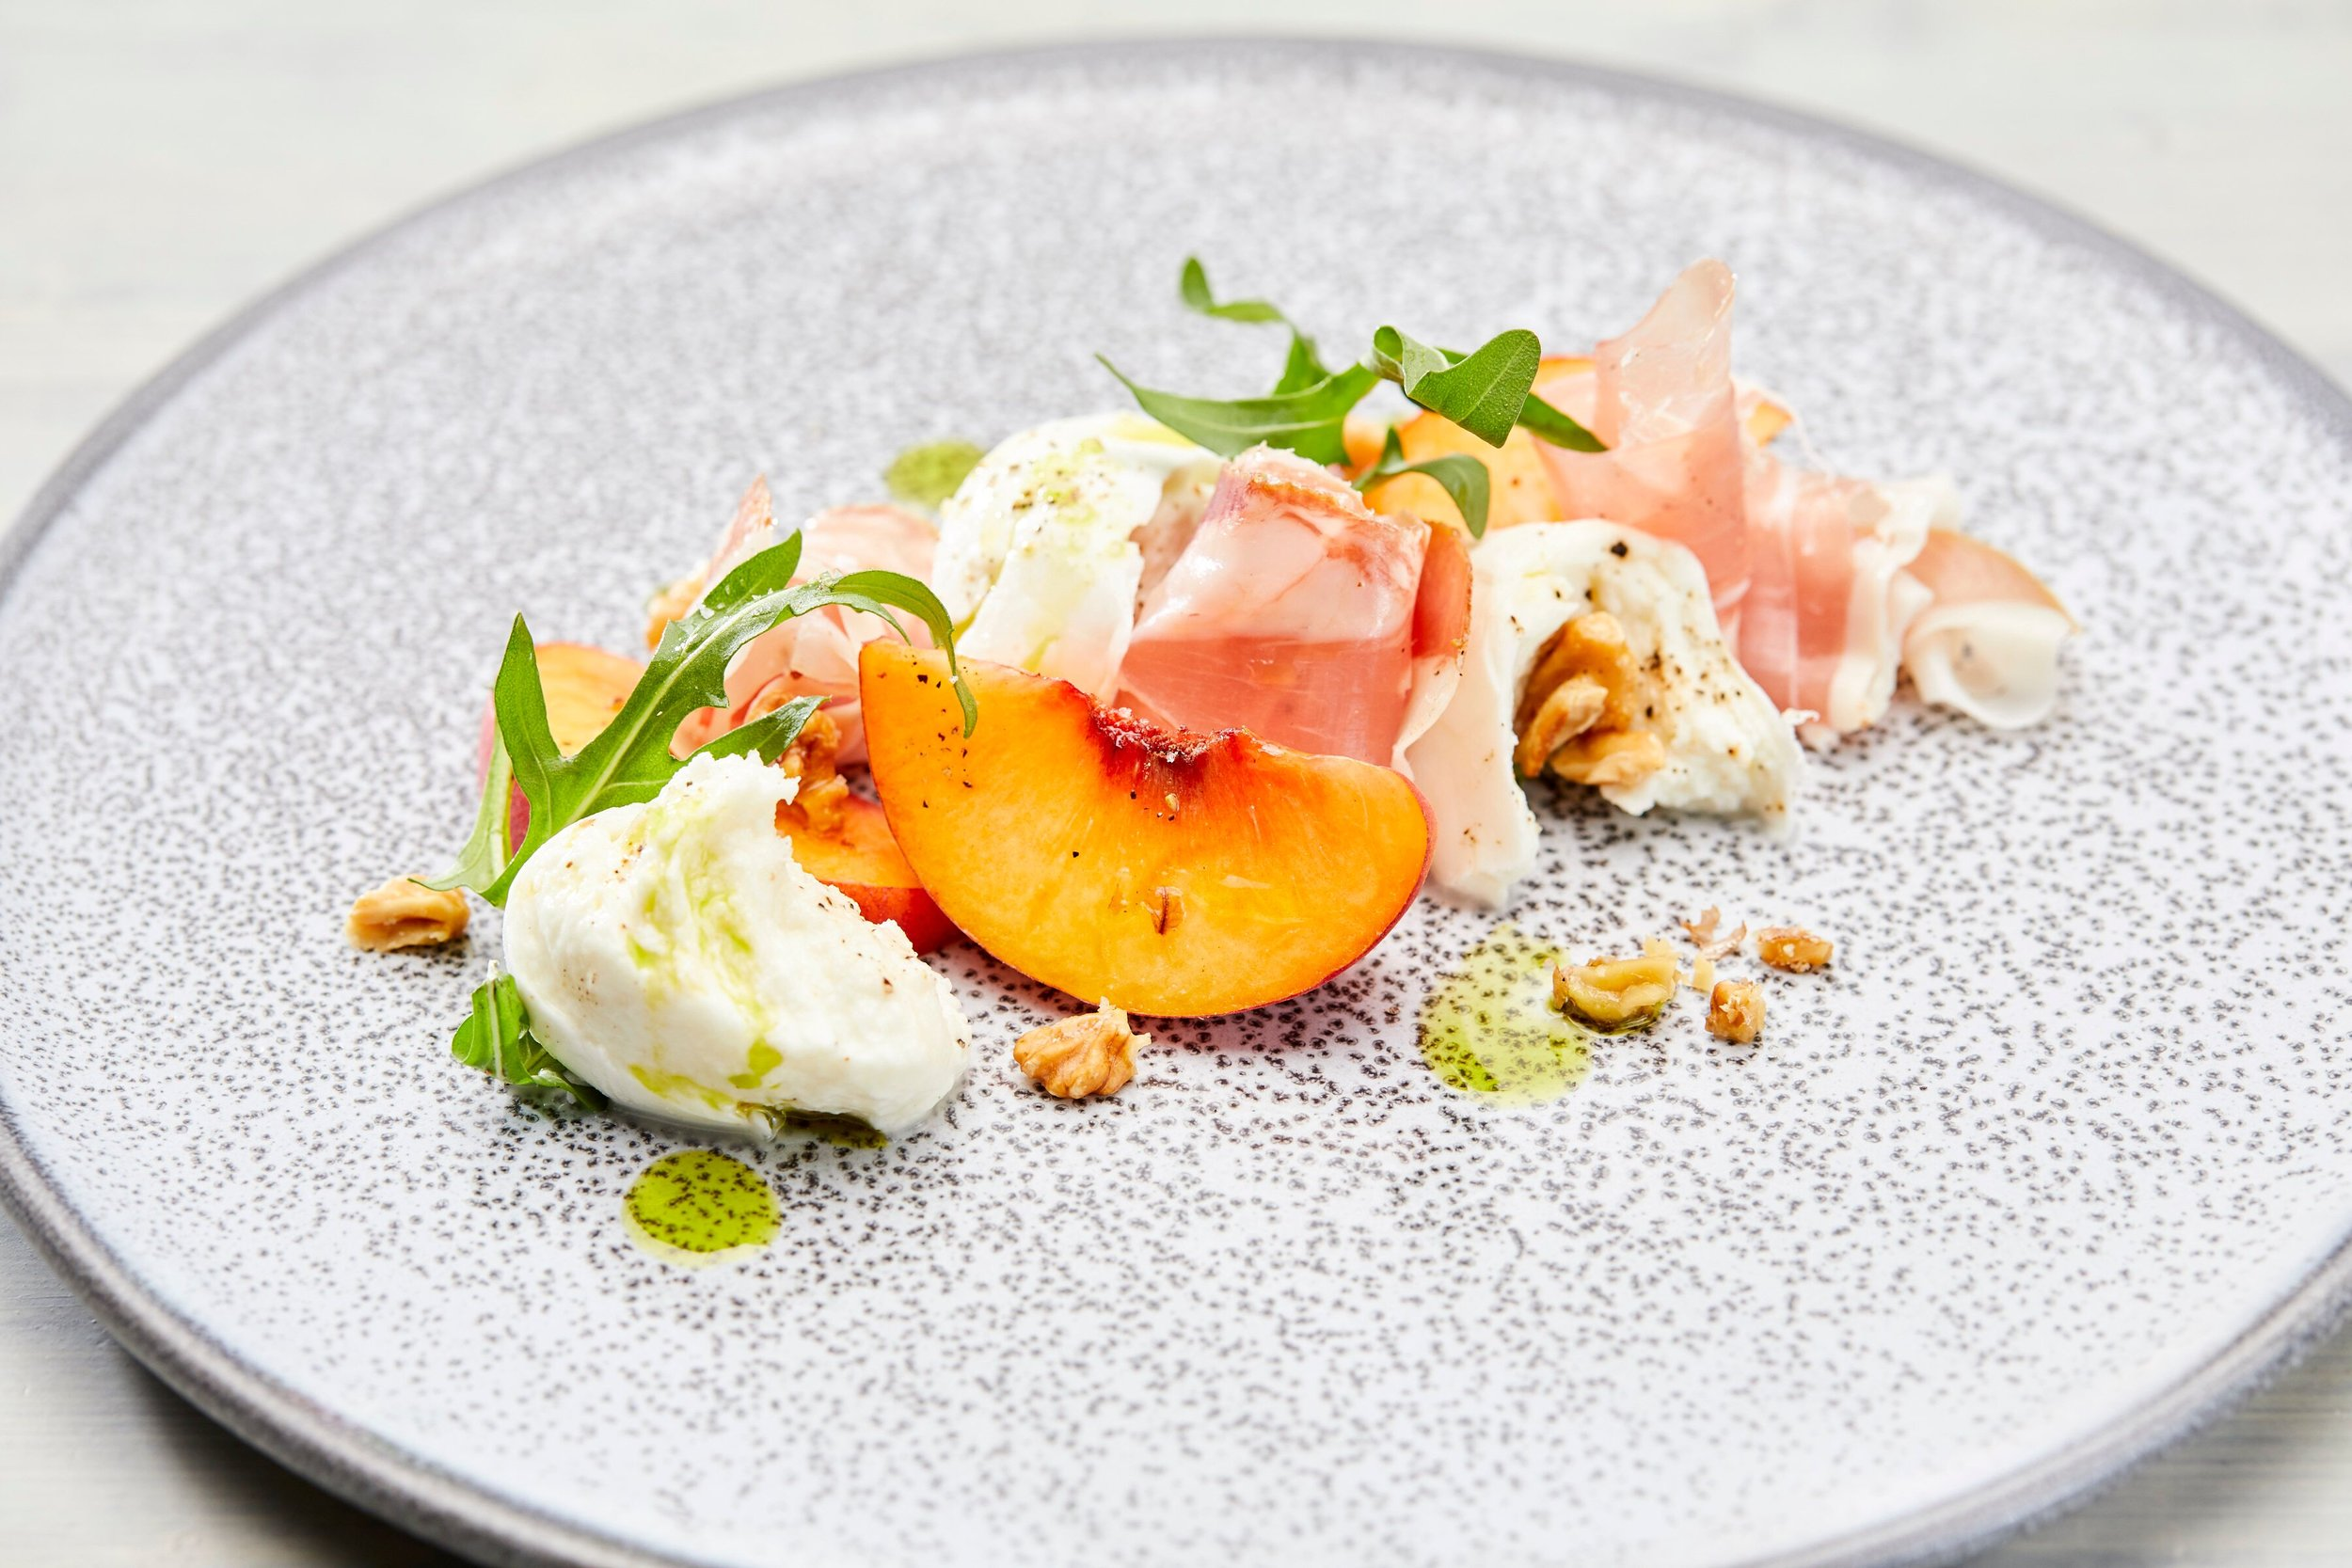 Metropolis Events - Buffalo mozzarella, yellow peaches, prosciutto di Parma, toasted walnuts, rocket leaves and basil infusion.jpeg